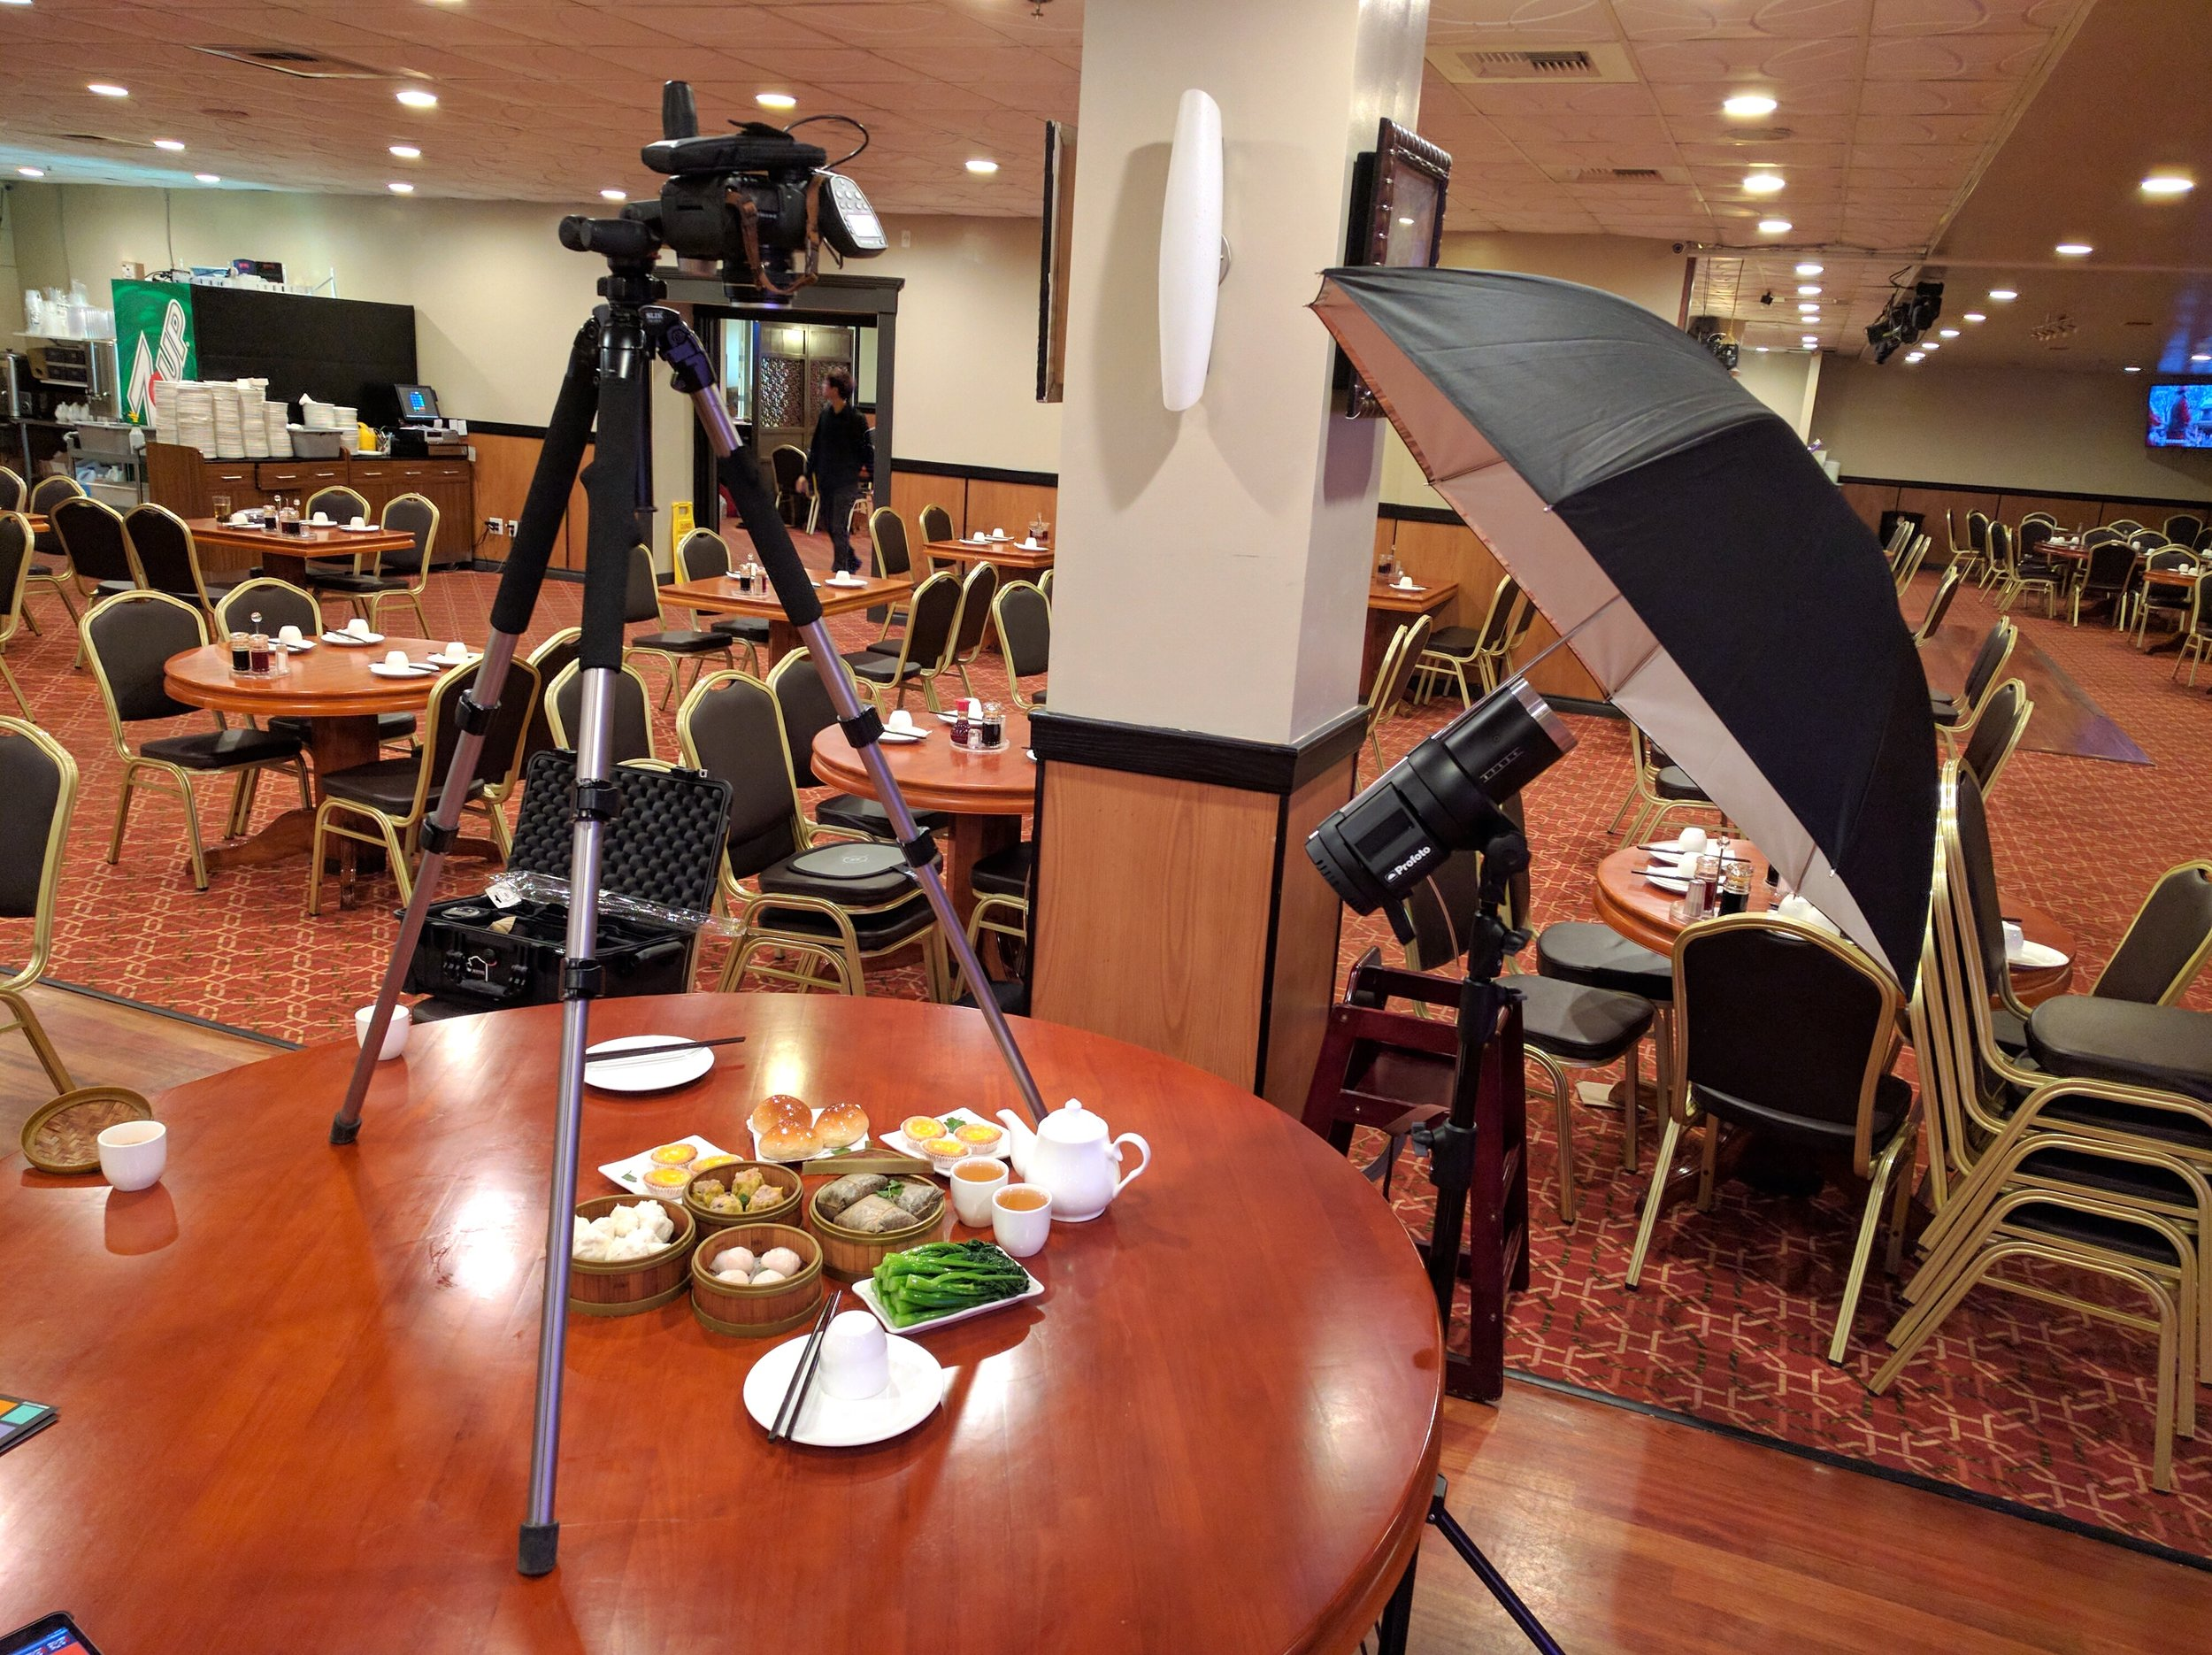 Who says you can't put a tripod on a table? Here's a look at our setup for the dim sum shoot.